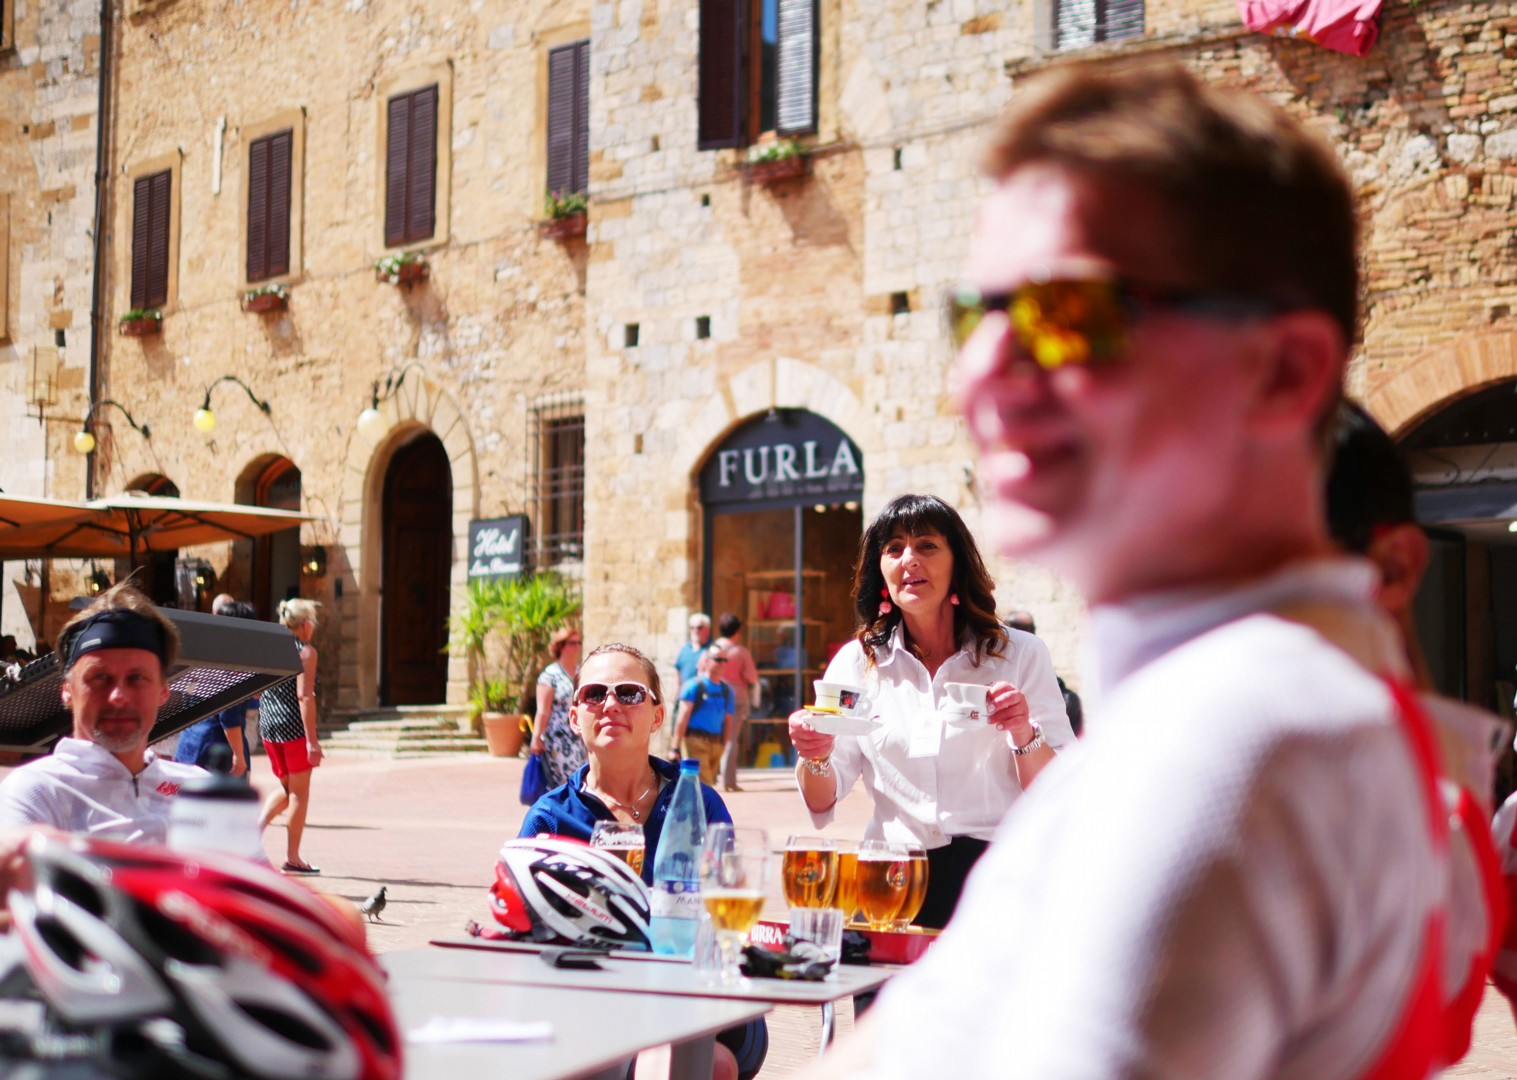 coffee-beer-rest-italy-road-cycling.jpg - Italy - Tuscany Tourer - Self Guided Road Cycling Holiday - Road Cycling